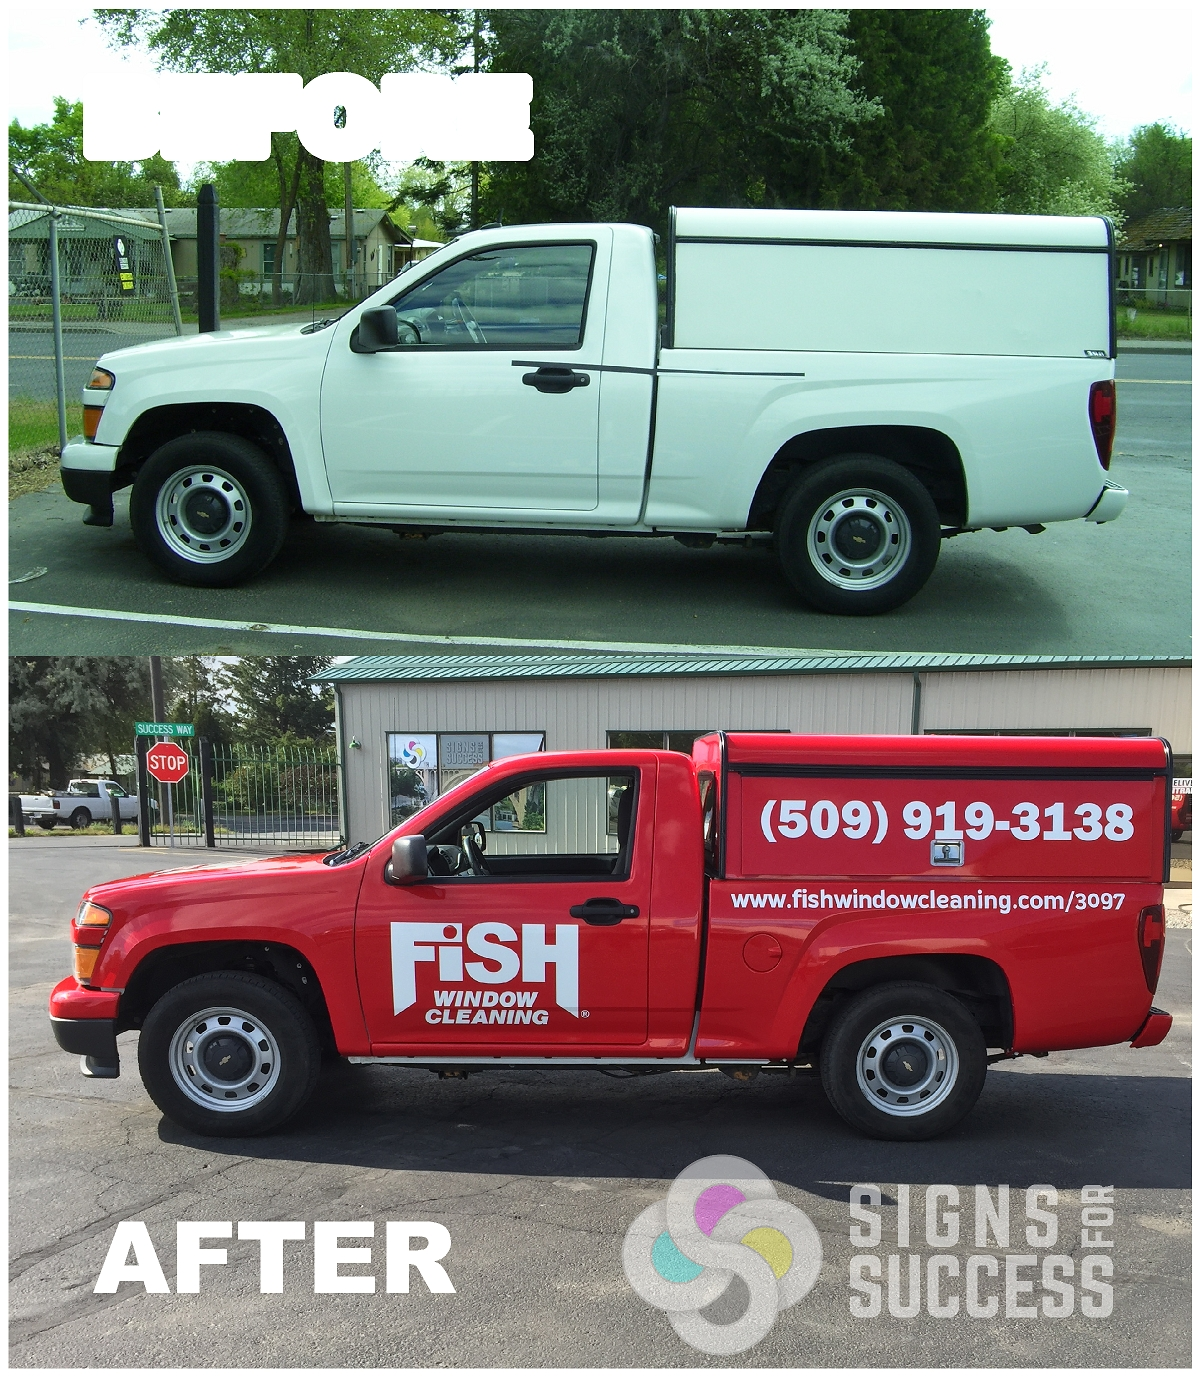 Red Commercial Color Change Wrap For Franchise Signs For